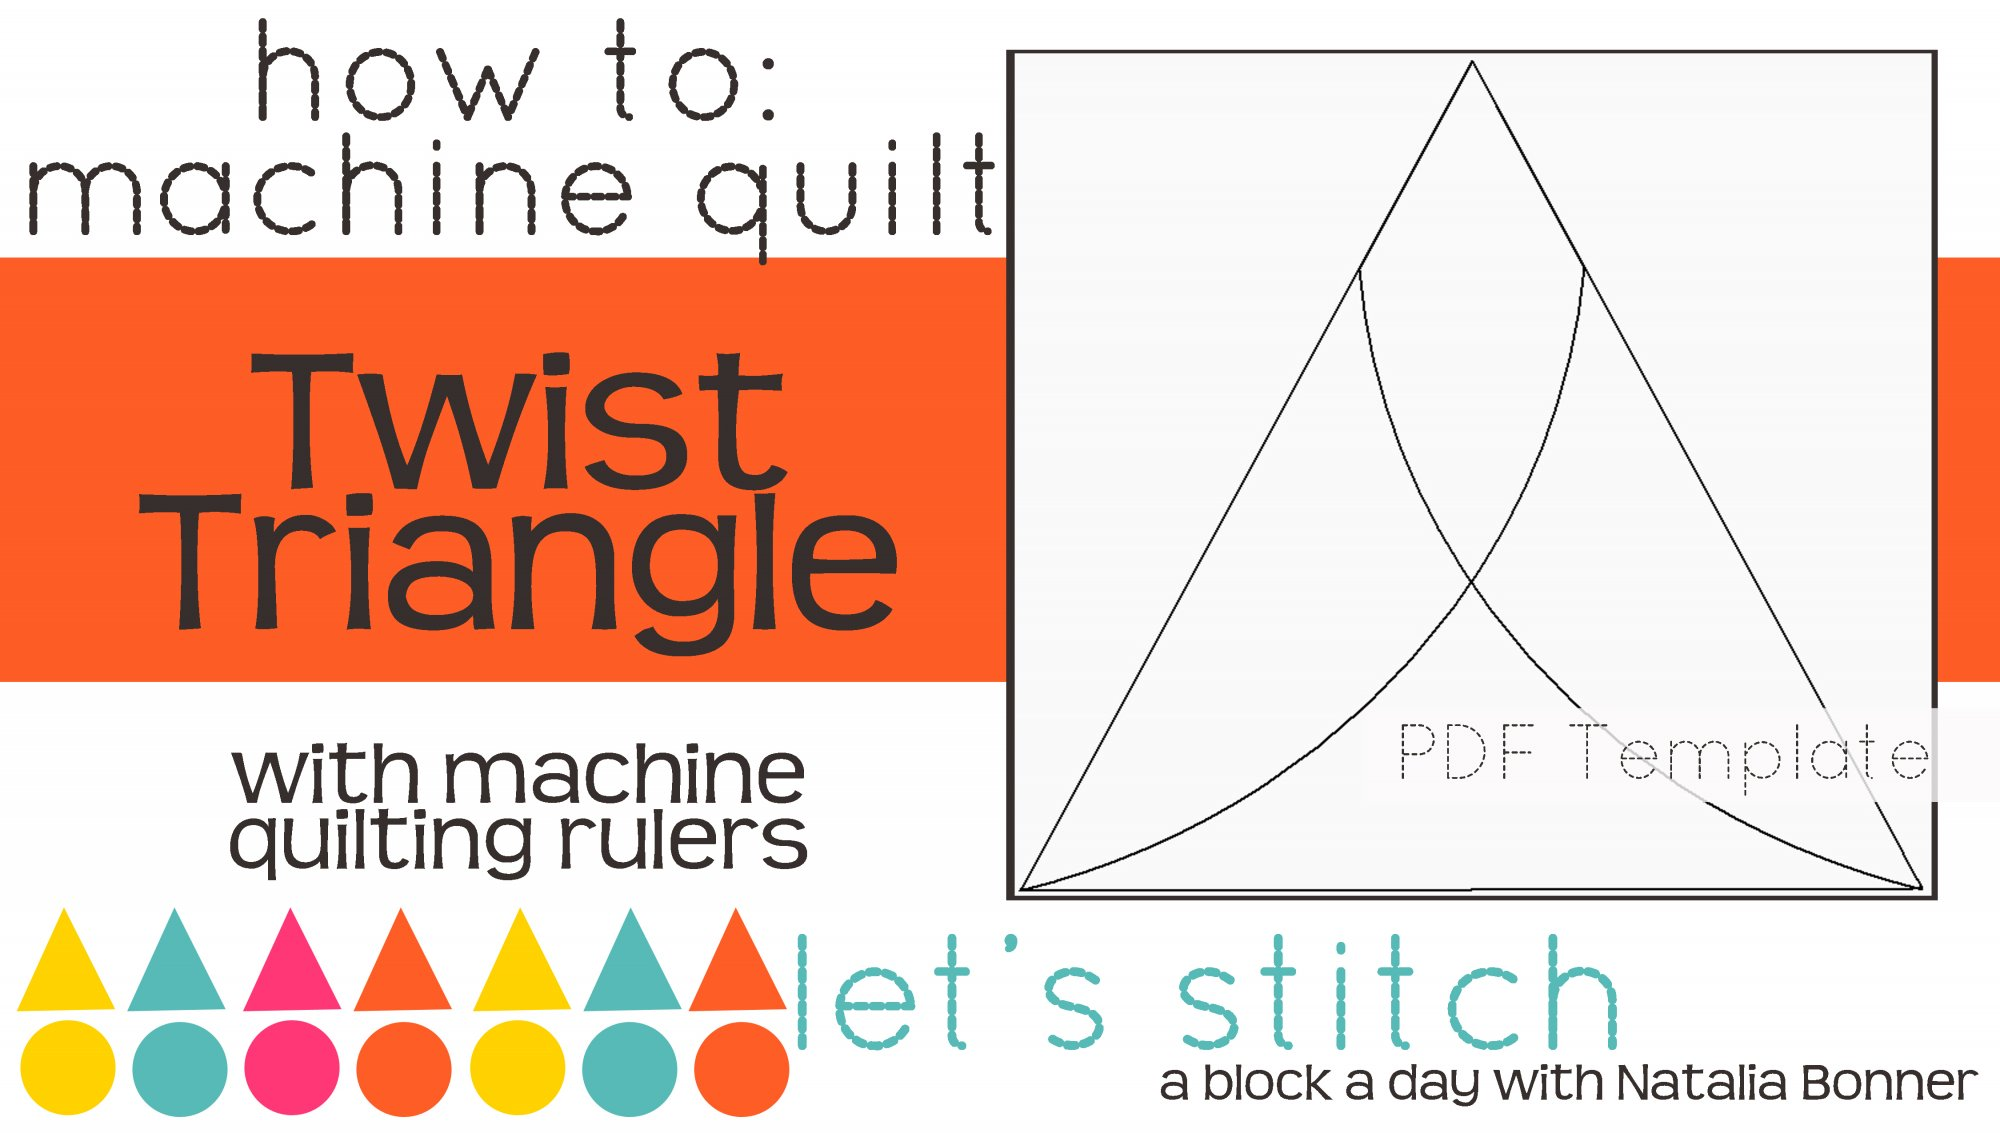 Let's Stitch - A Block a Day With Natalia Bonner - PDF - Twist Triangle